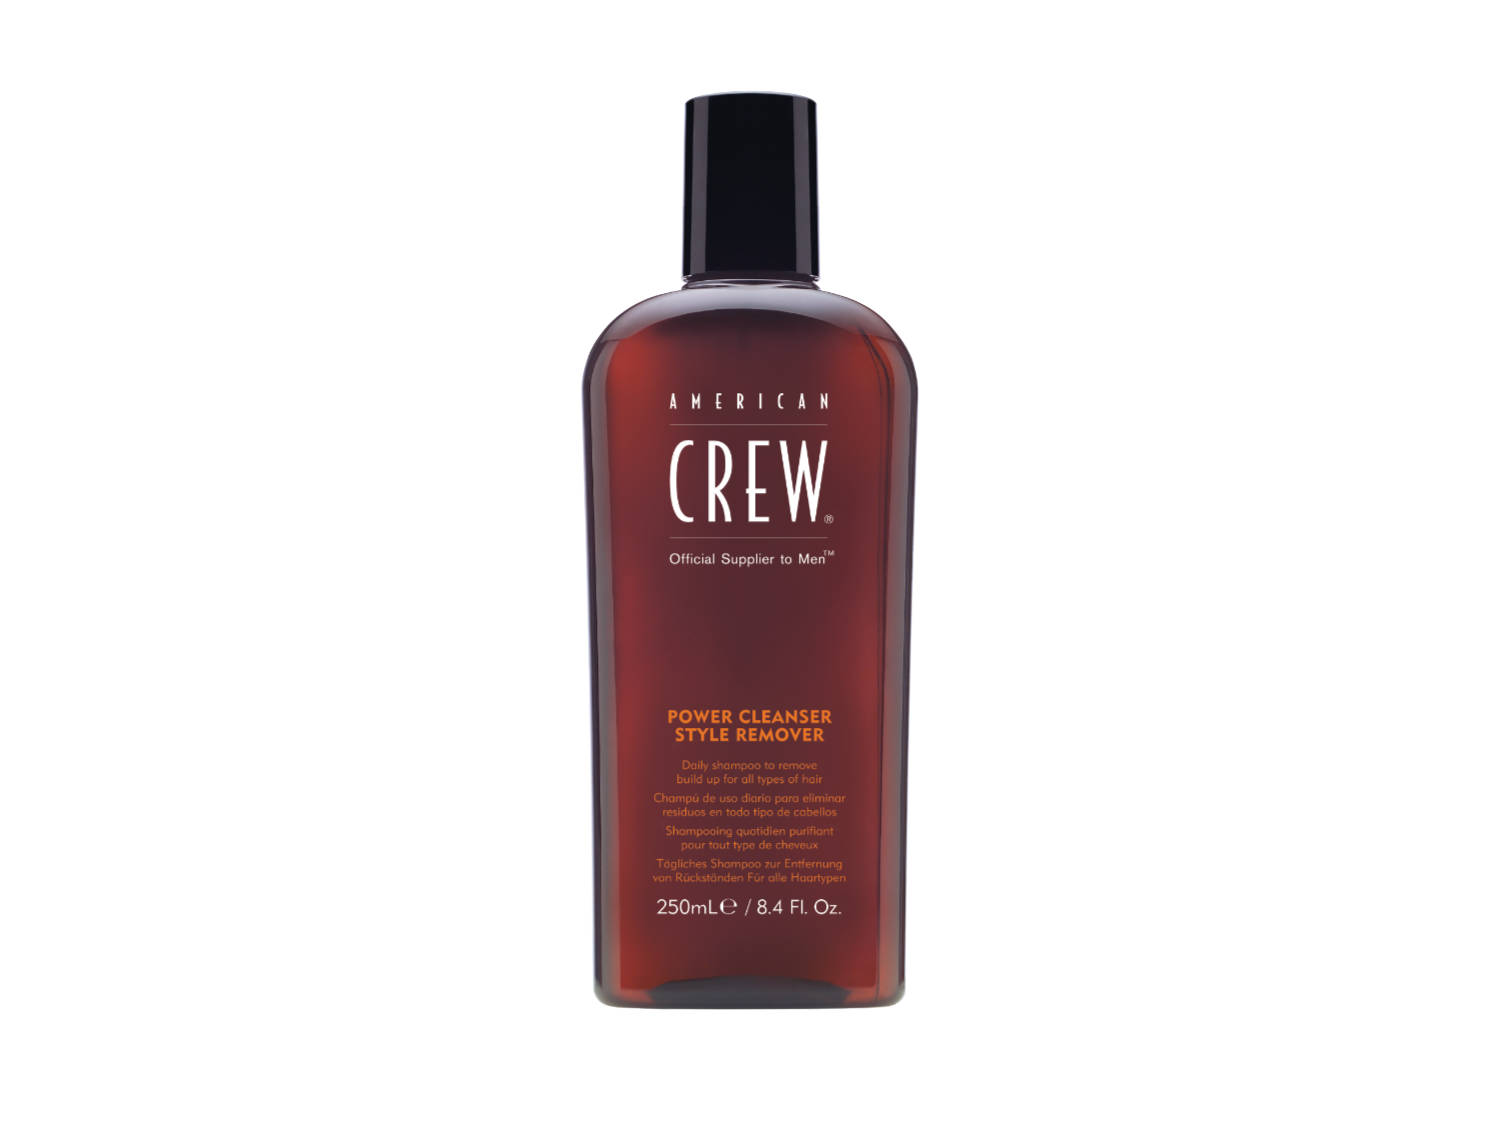 Arma Beauty - American Crew - Power Cleanser Style Remover